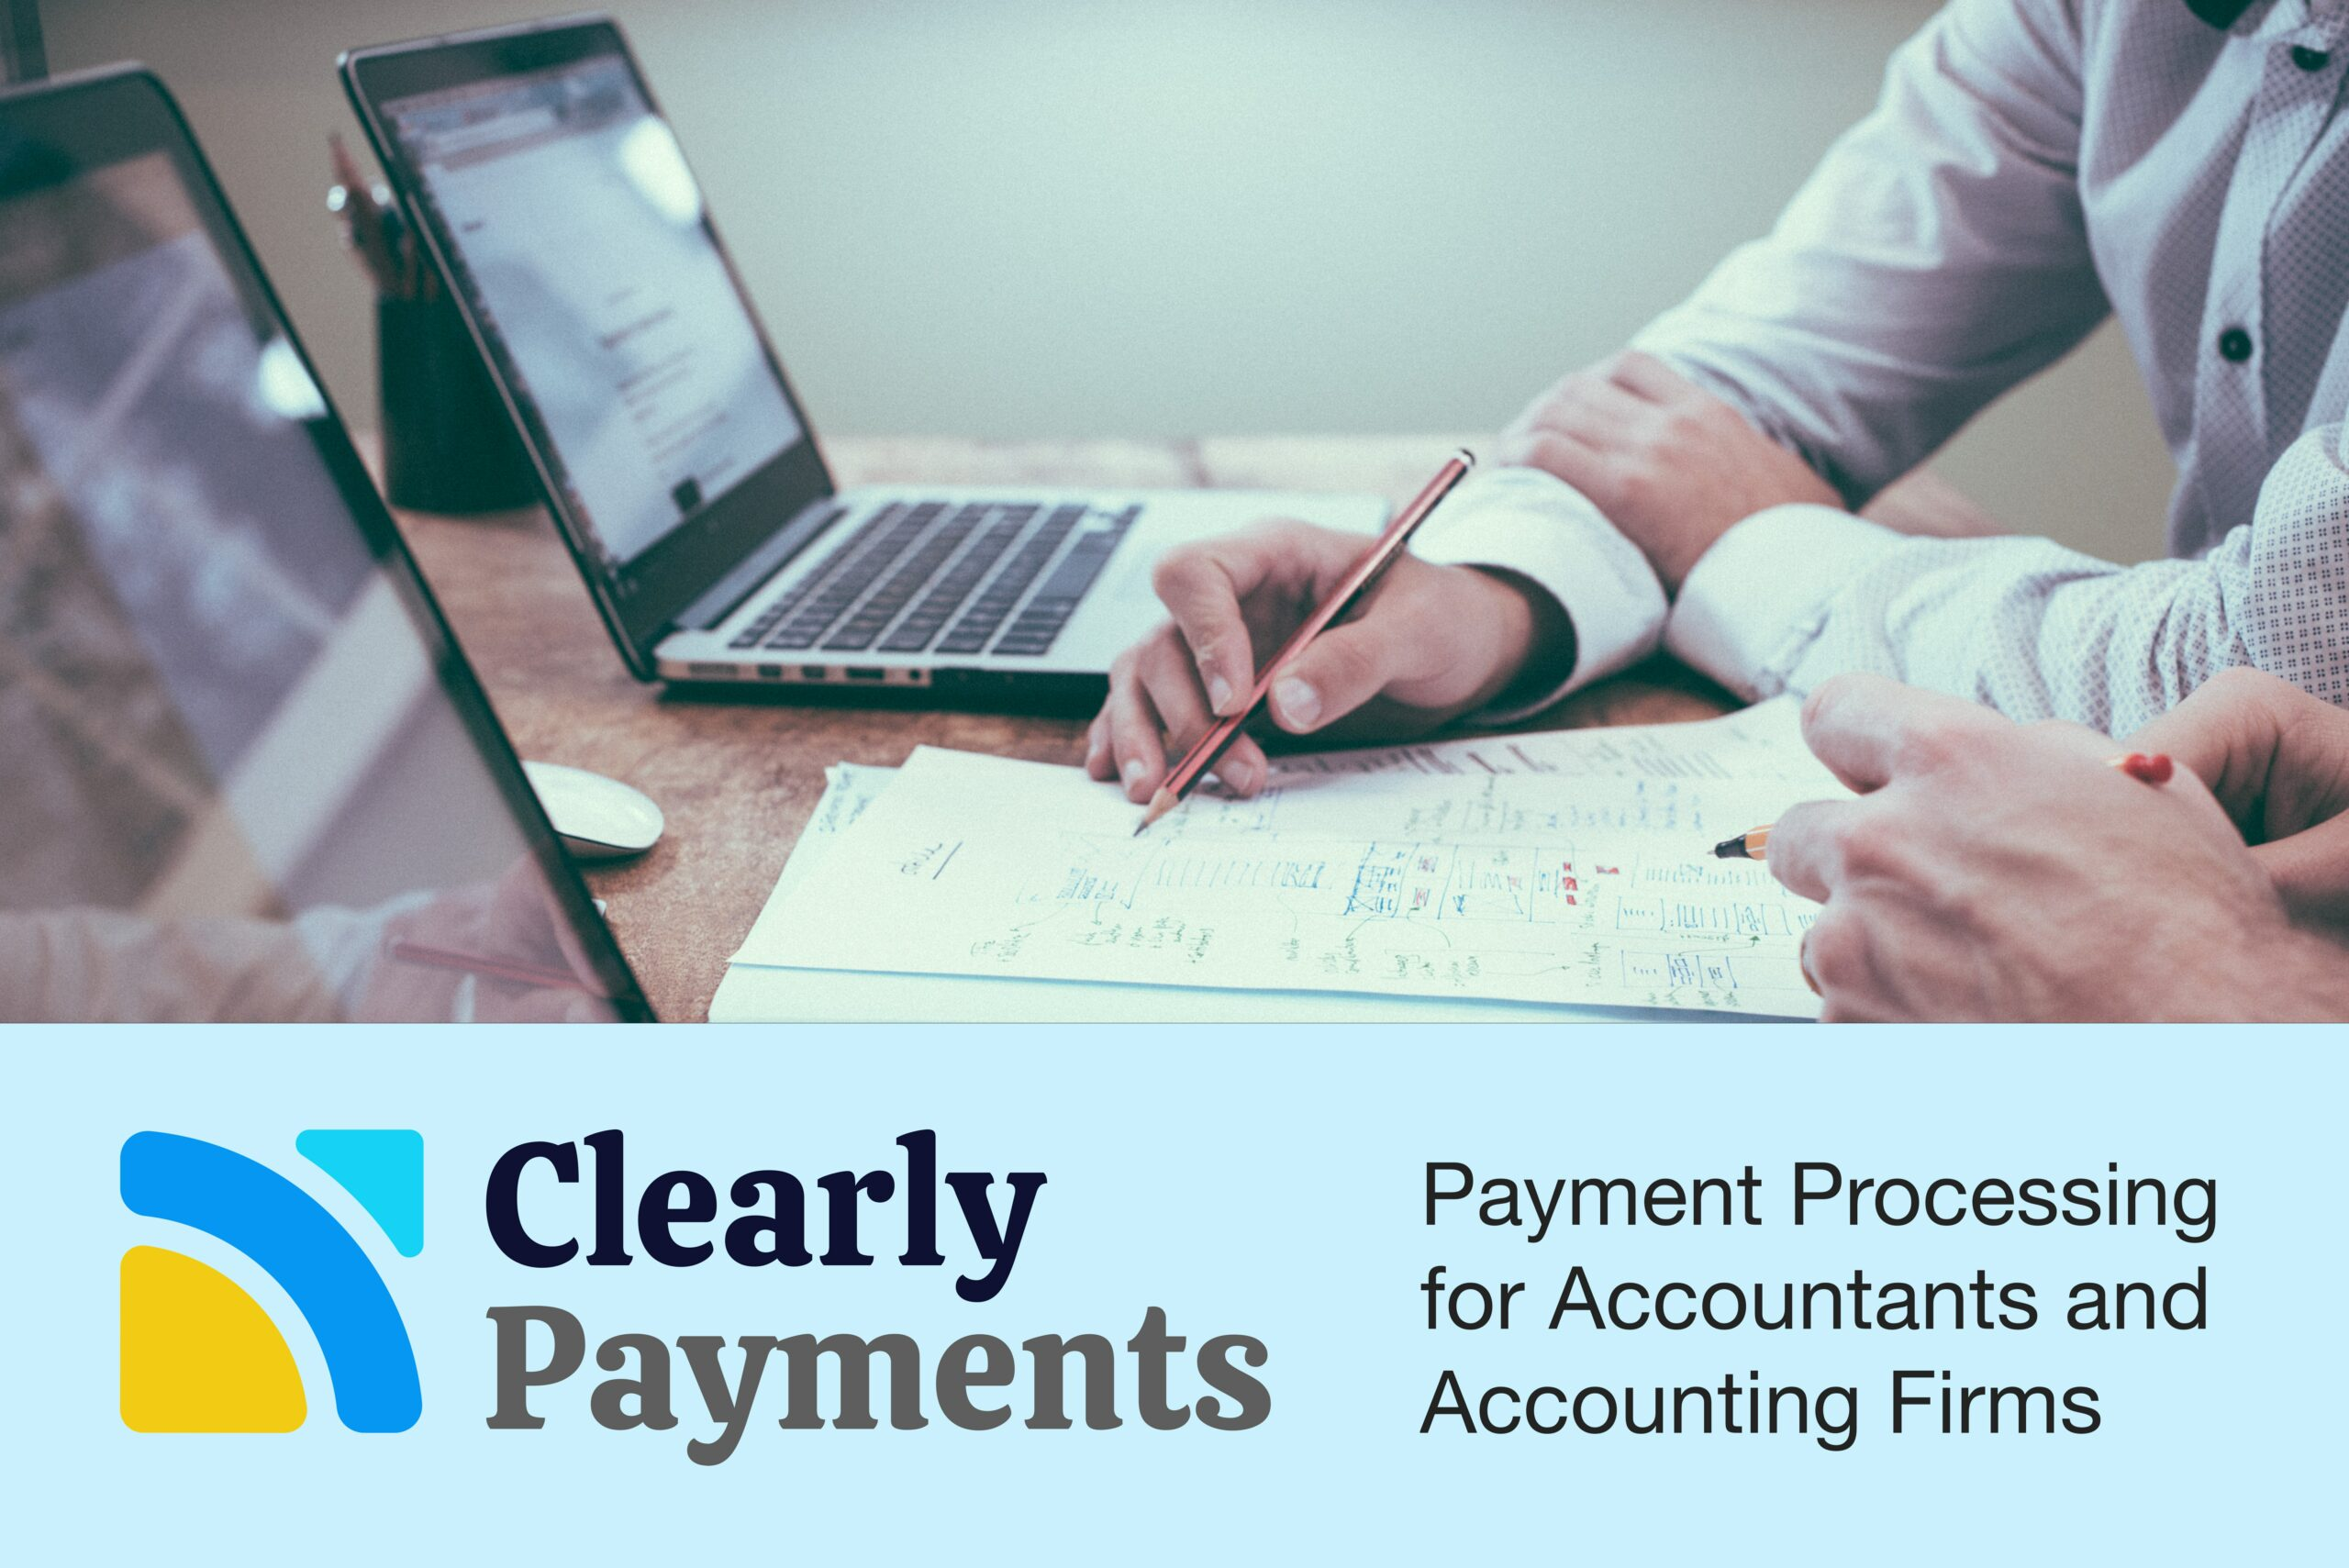 Payment Processing for Accountants and Accounting Firms